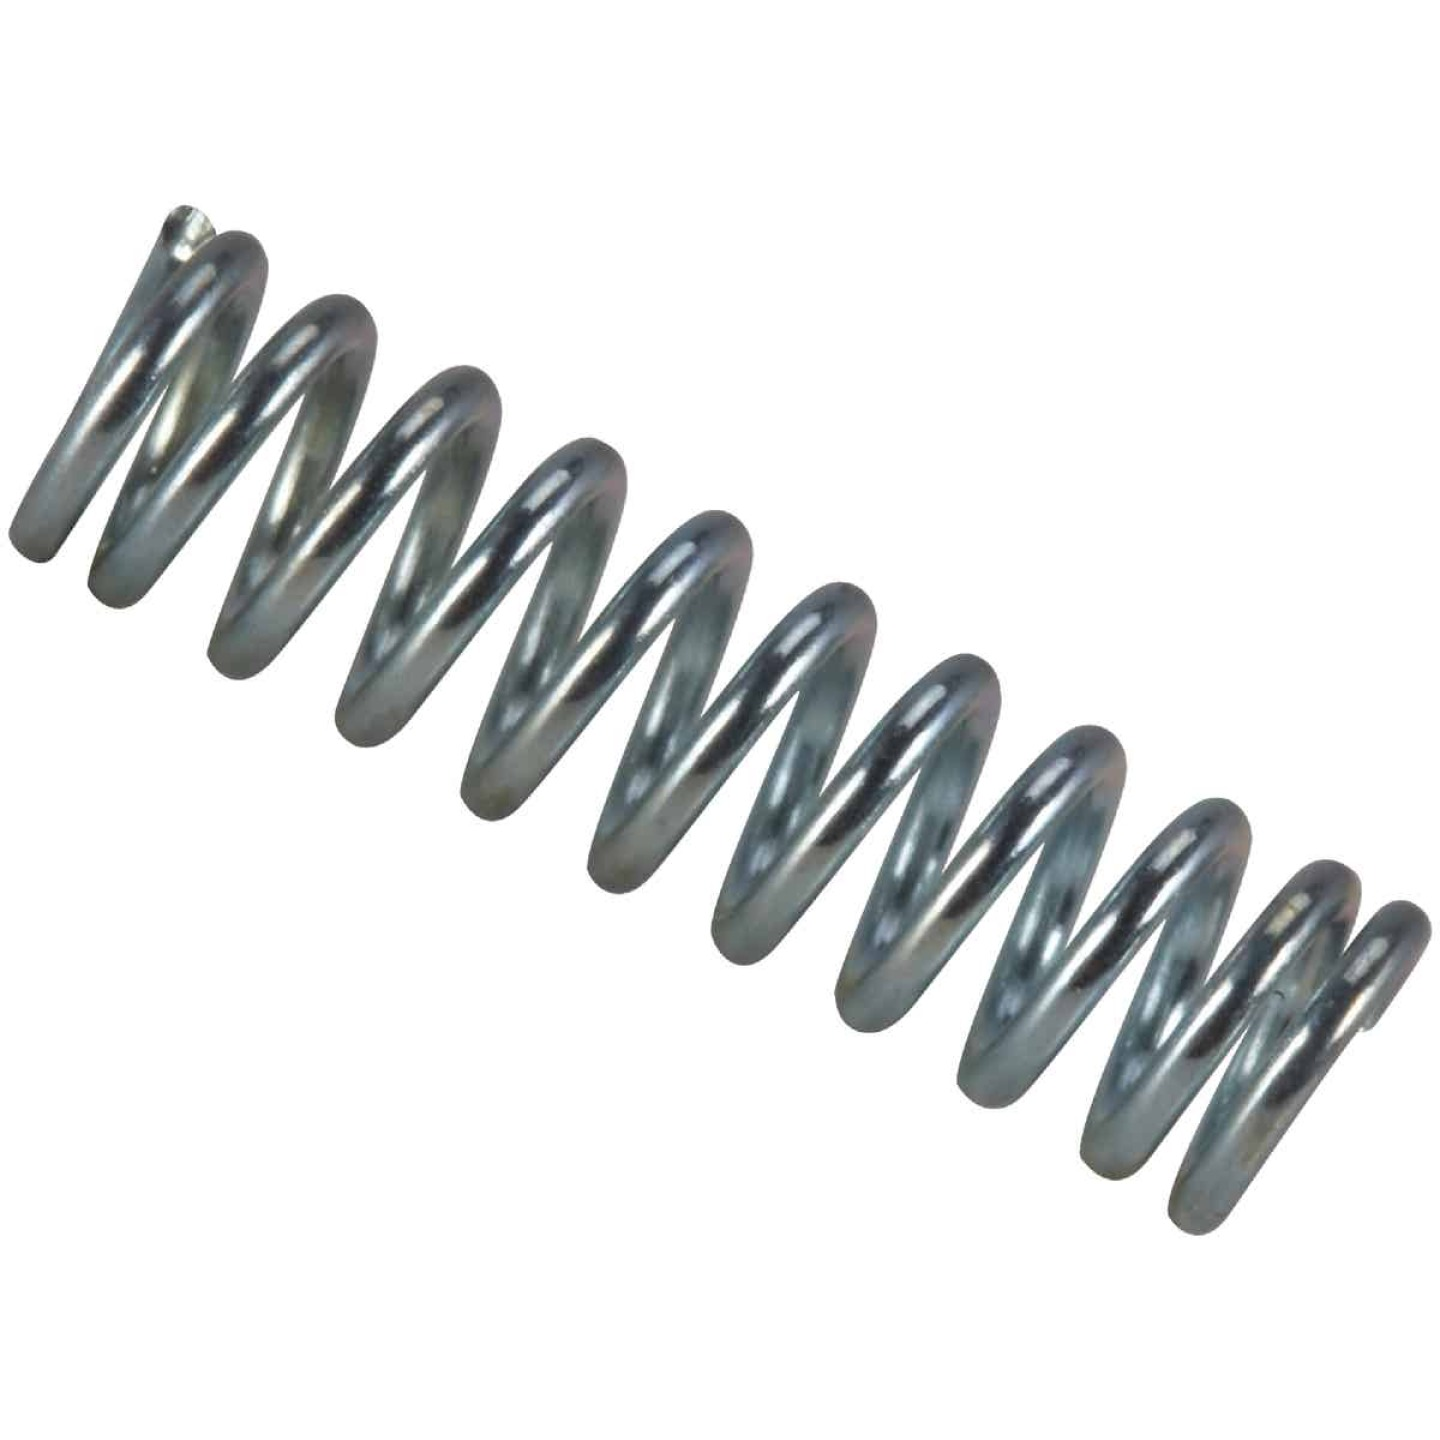 Century Spring 6 In. x 1-3/8 In. Compression Spring (1 Count) Image 1